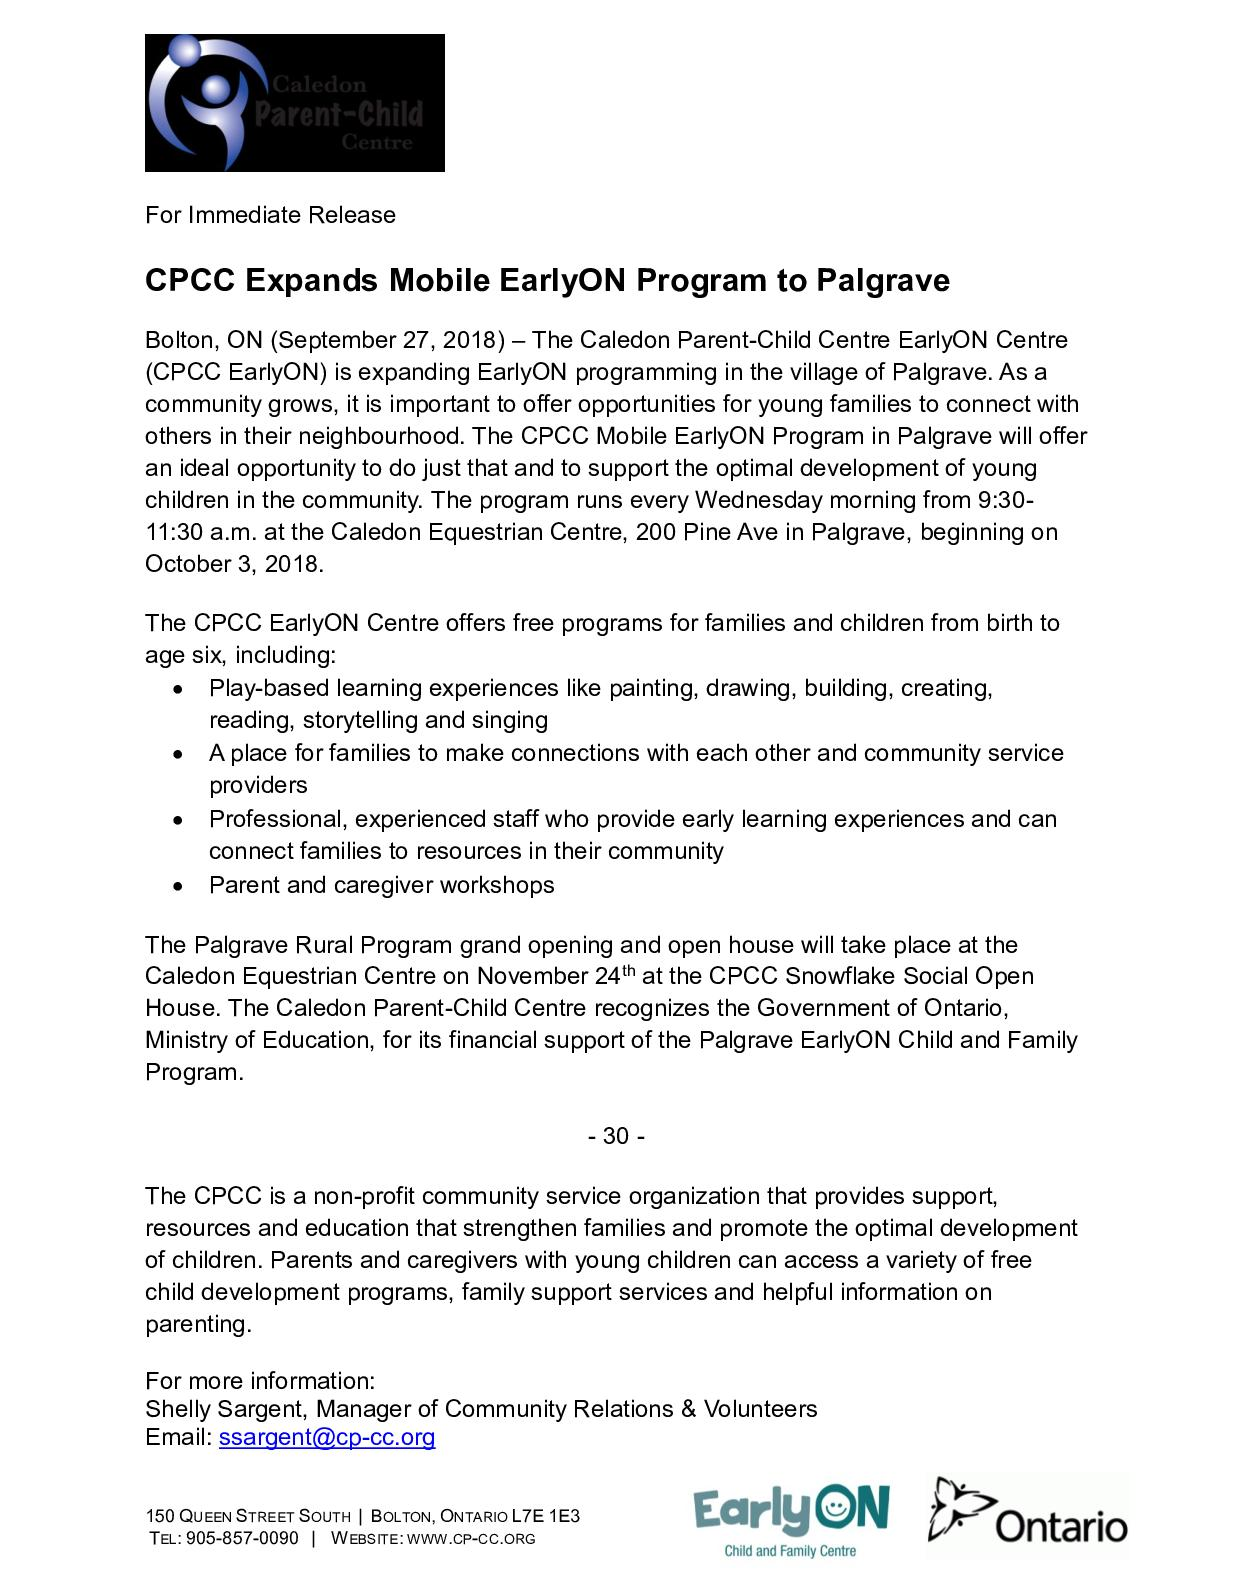 Calaméo Cpcc Expands Mobile Early On Program To Palgrave